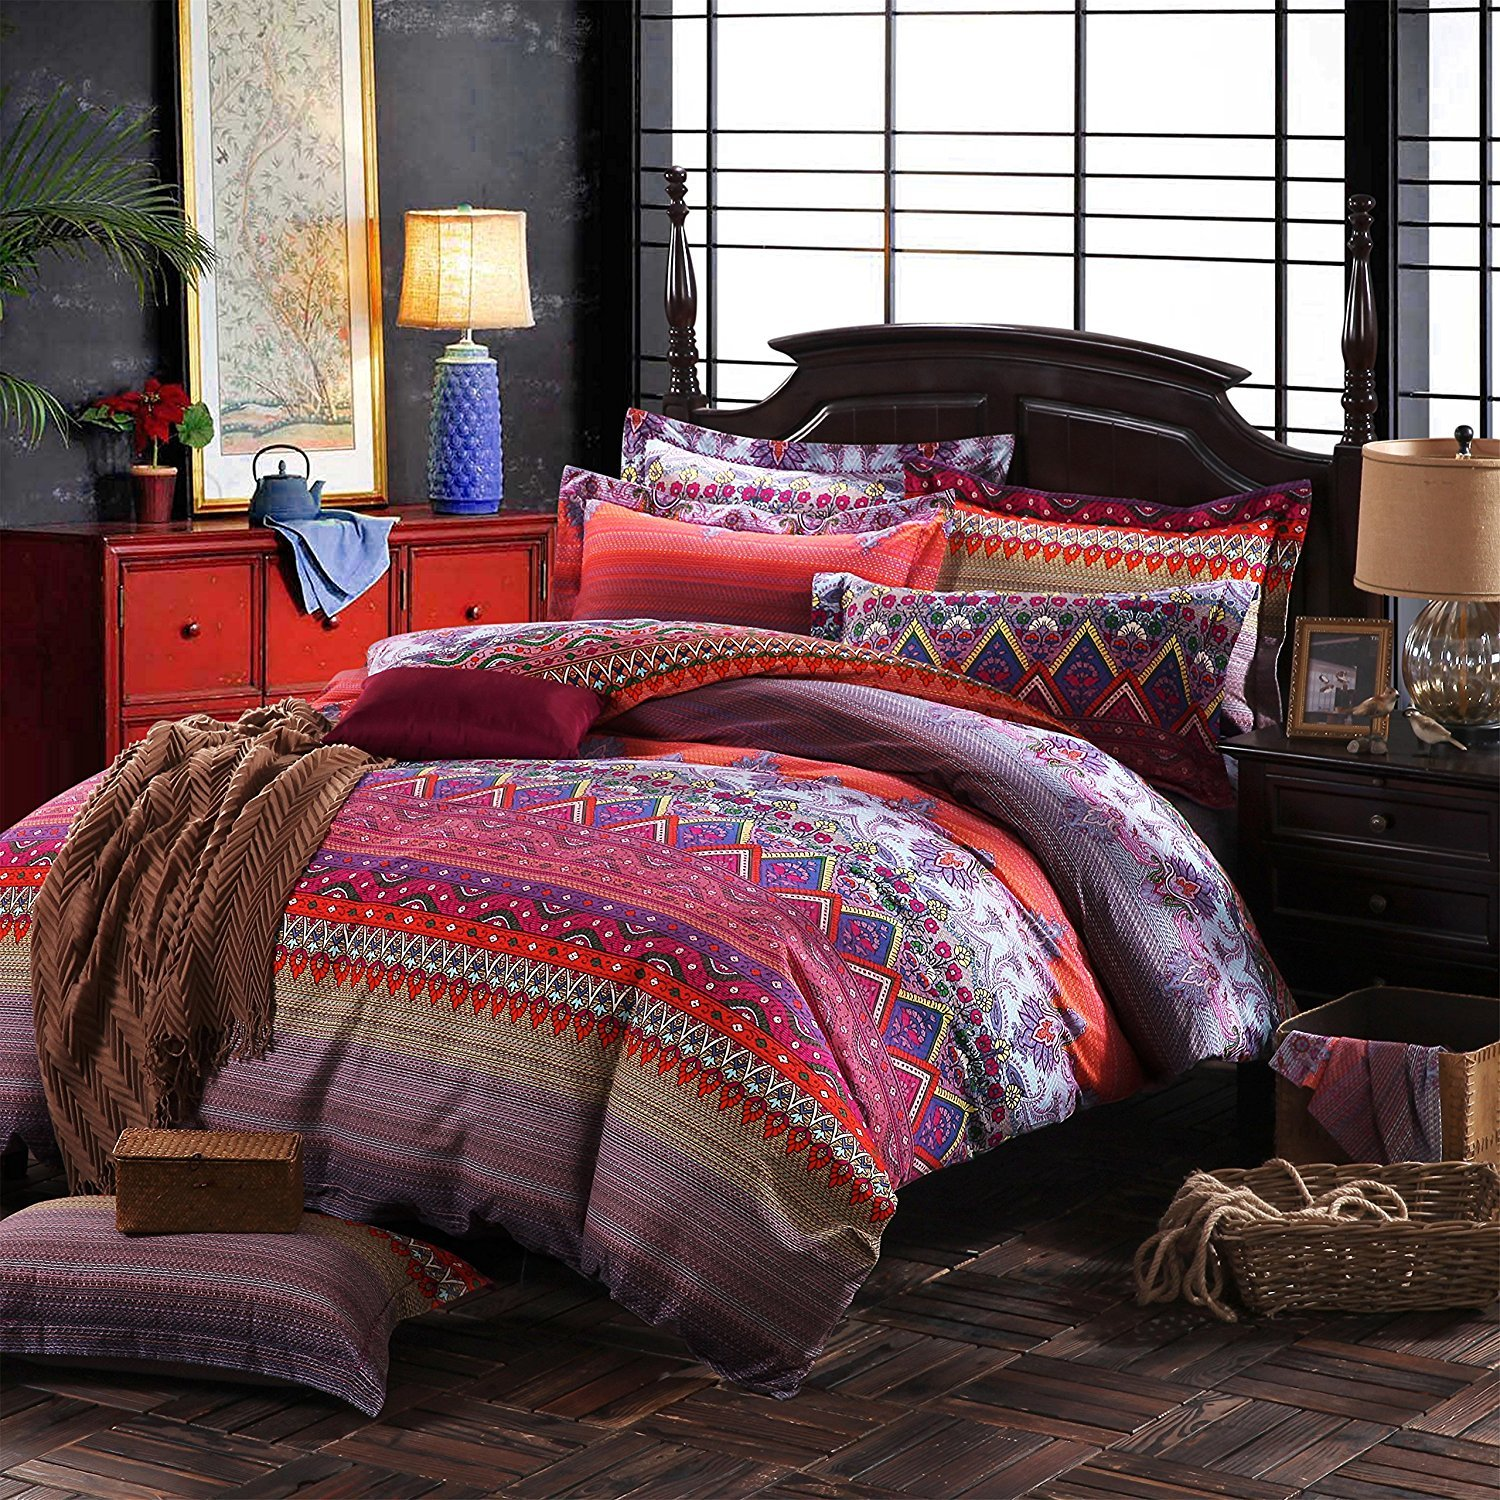 FADFAY Colorful Bohemian Ethnic Style Bedding Boho Duvet Cover Bohemian Sheet Sets Baroque Style Bedding 4 Pcs (Twin XL, Flat Sheet) by FADFAY (Image #1)